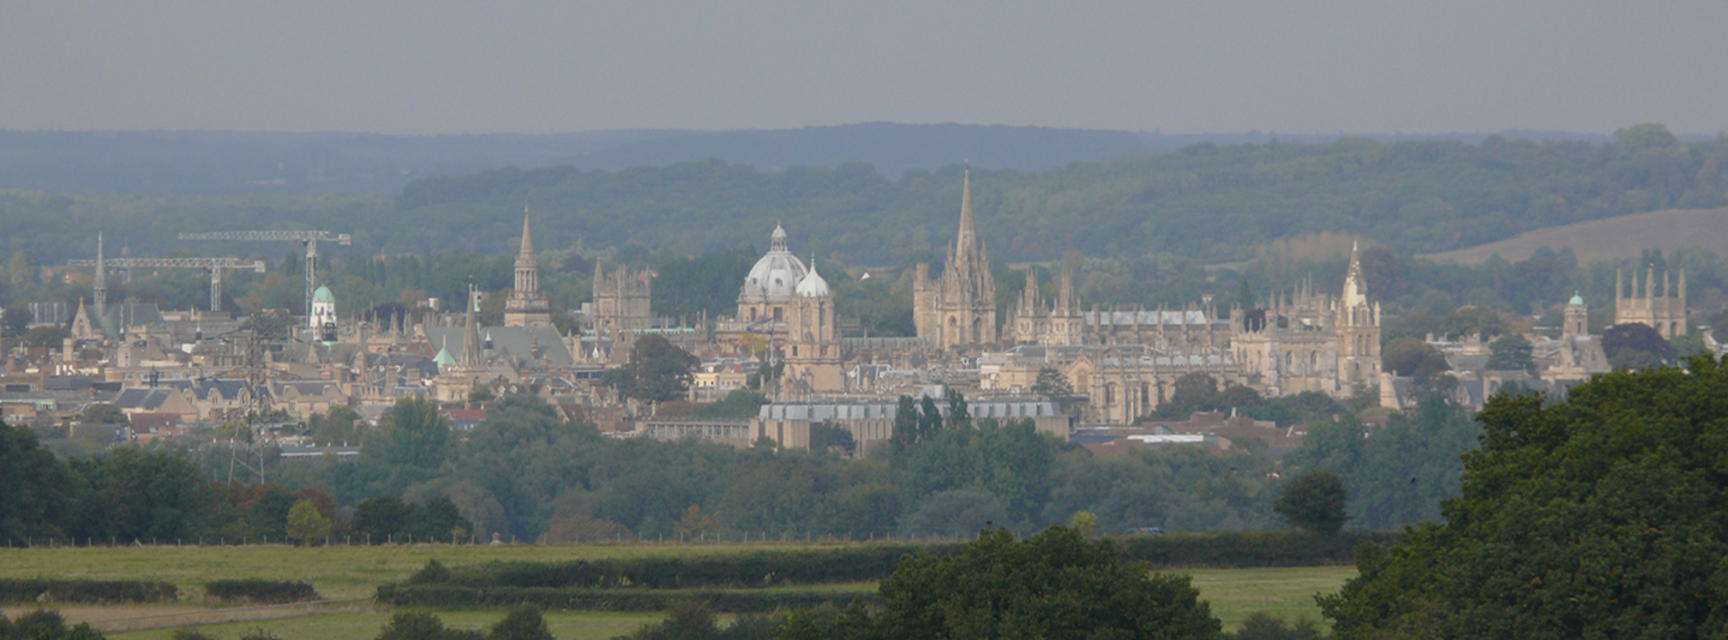 1440x758 oxford from boars hill